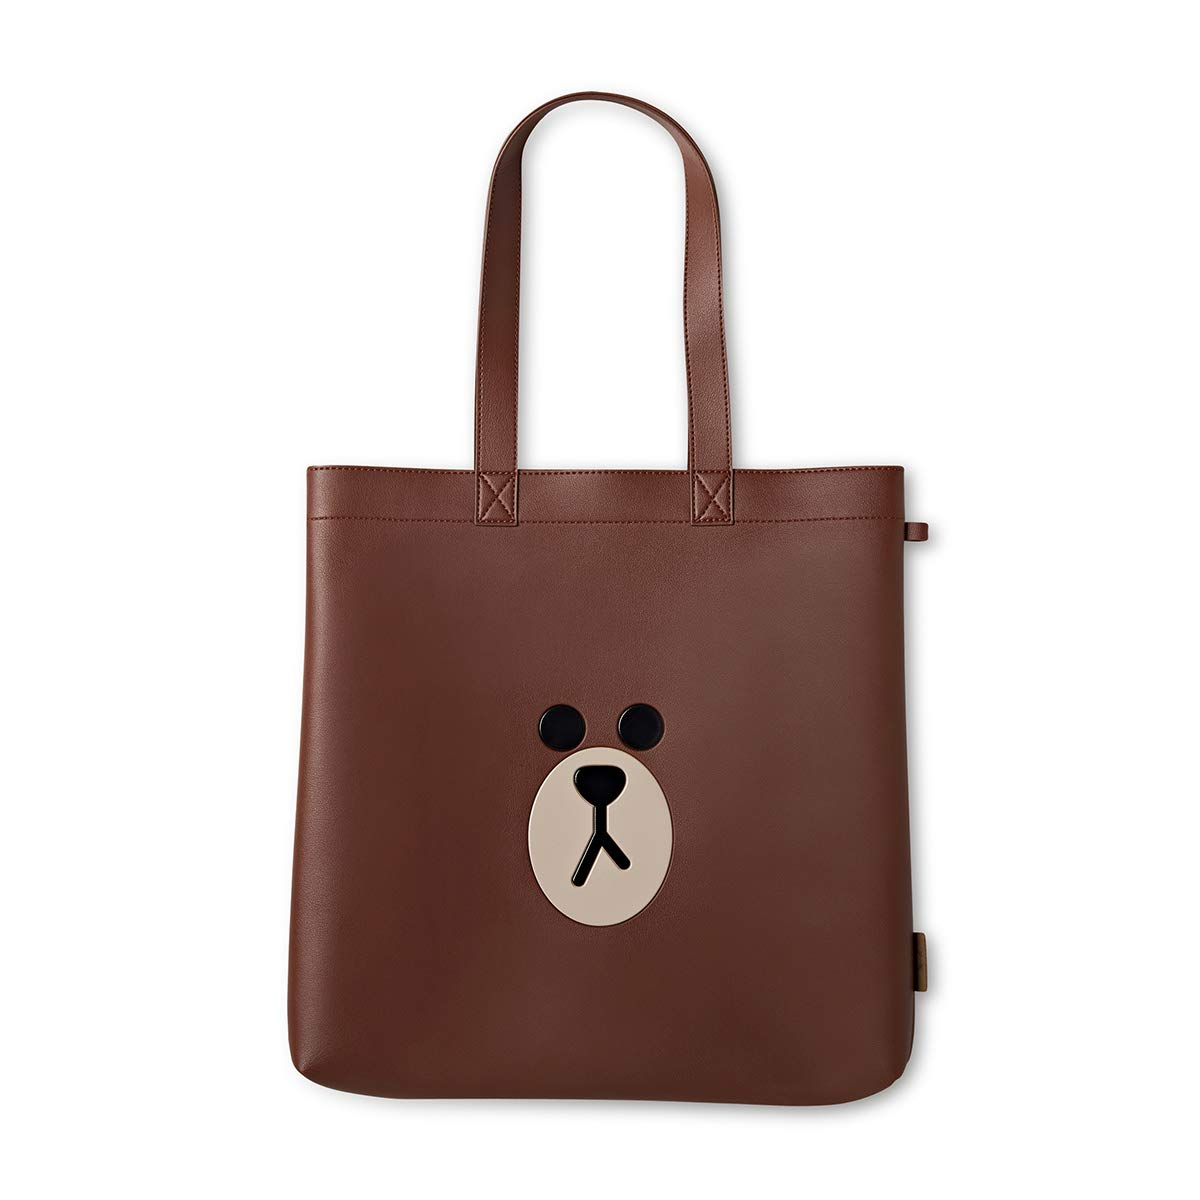 LINE FRIENDS Tote Bag - BROWN Character Faux Leather Shoulder Purse, Brown